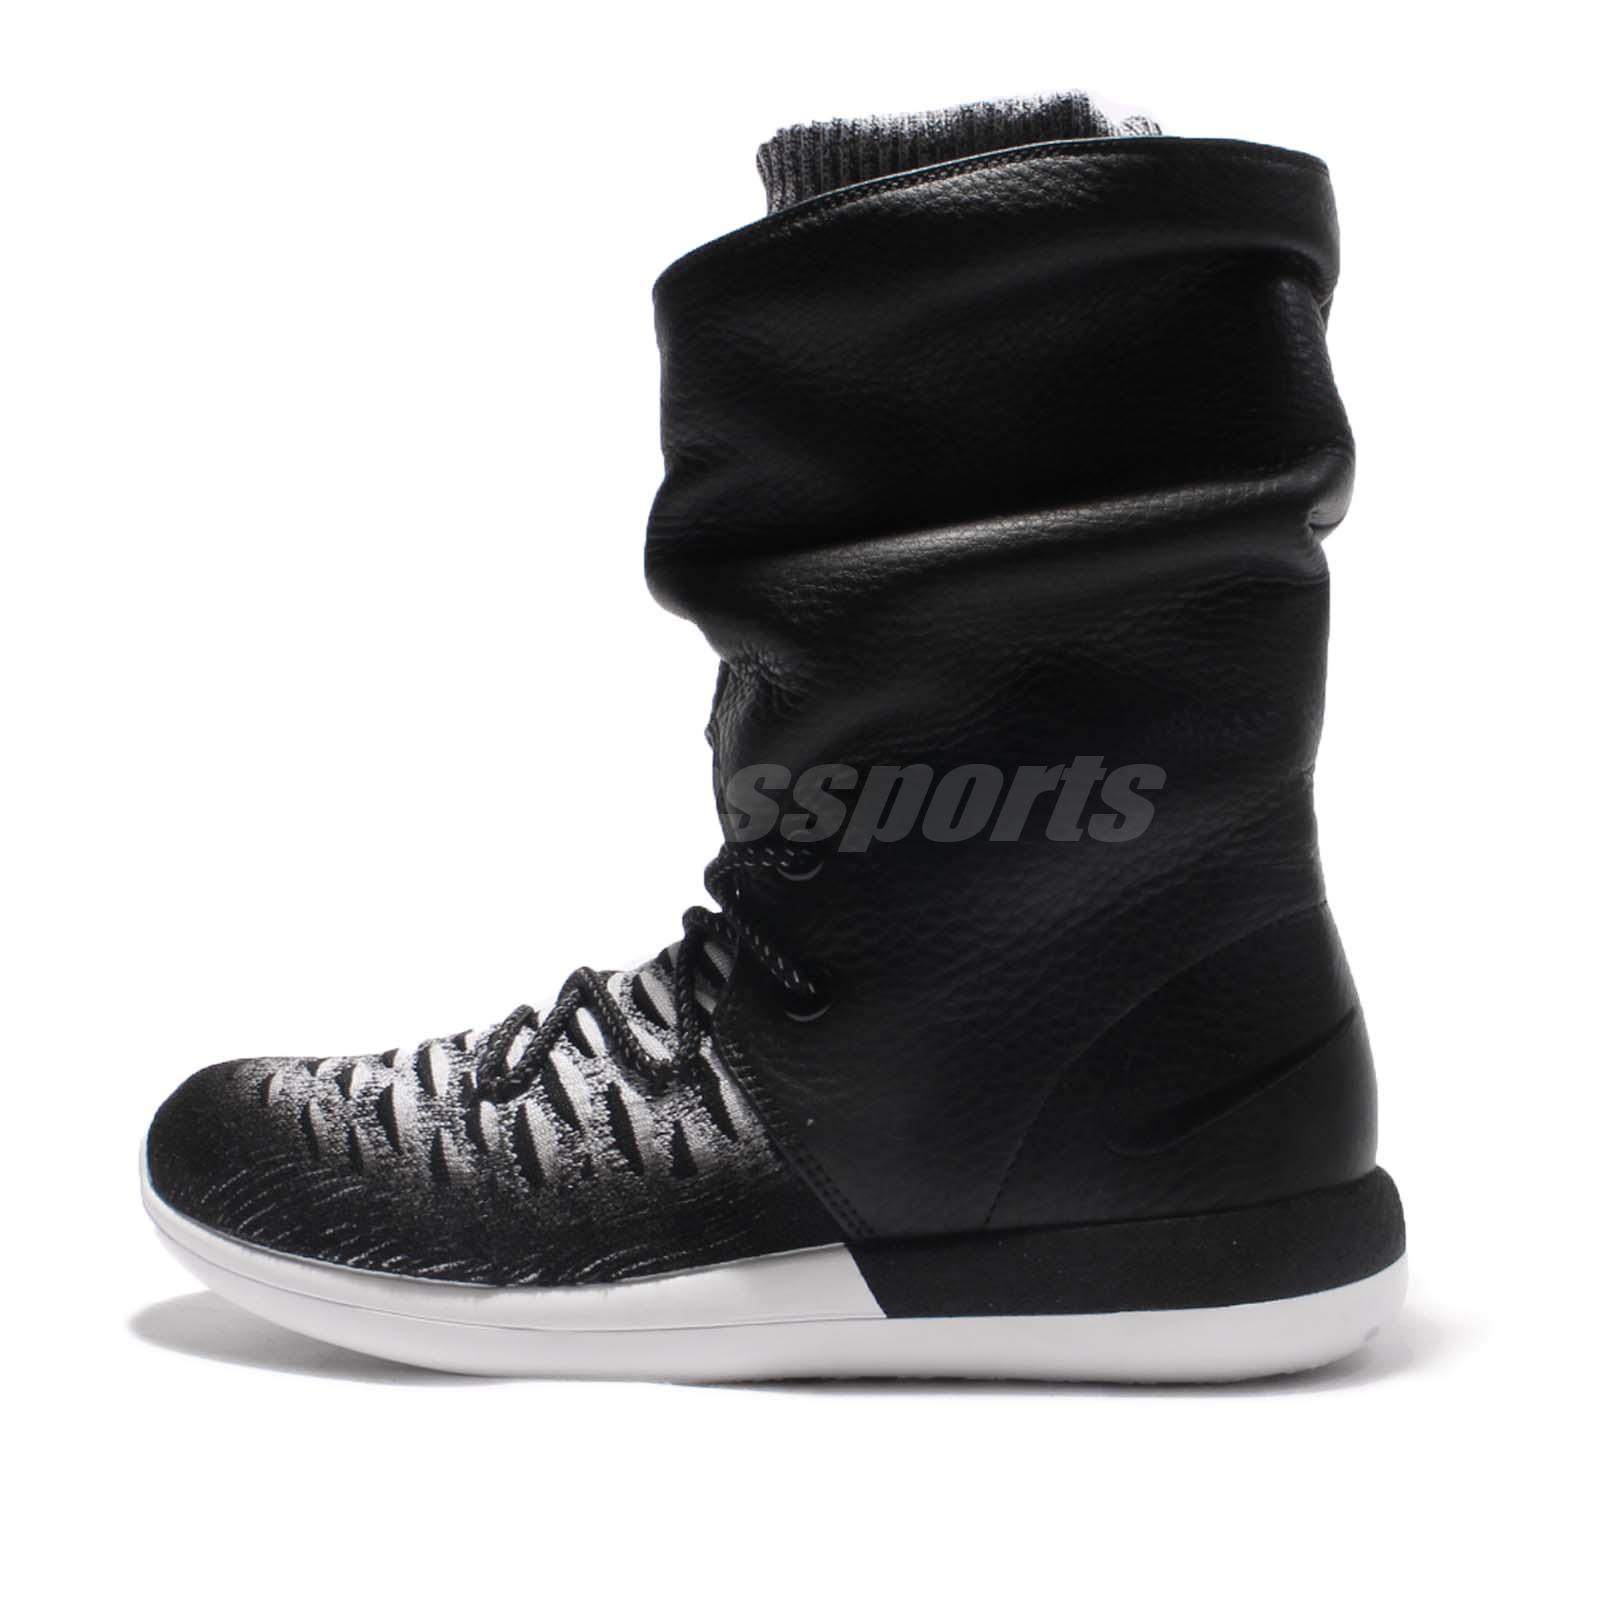 9a94d189c9554 Wmns Nike Roshe Two Hi Flyknit 2 Hi Top Black Women Boots Sneakerboot  861708-002